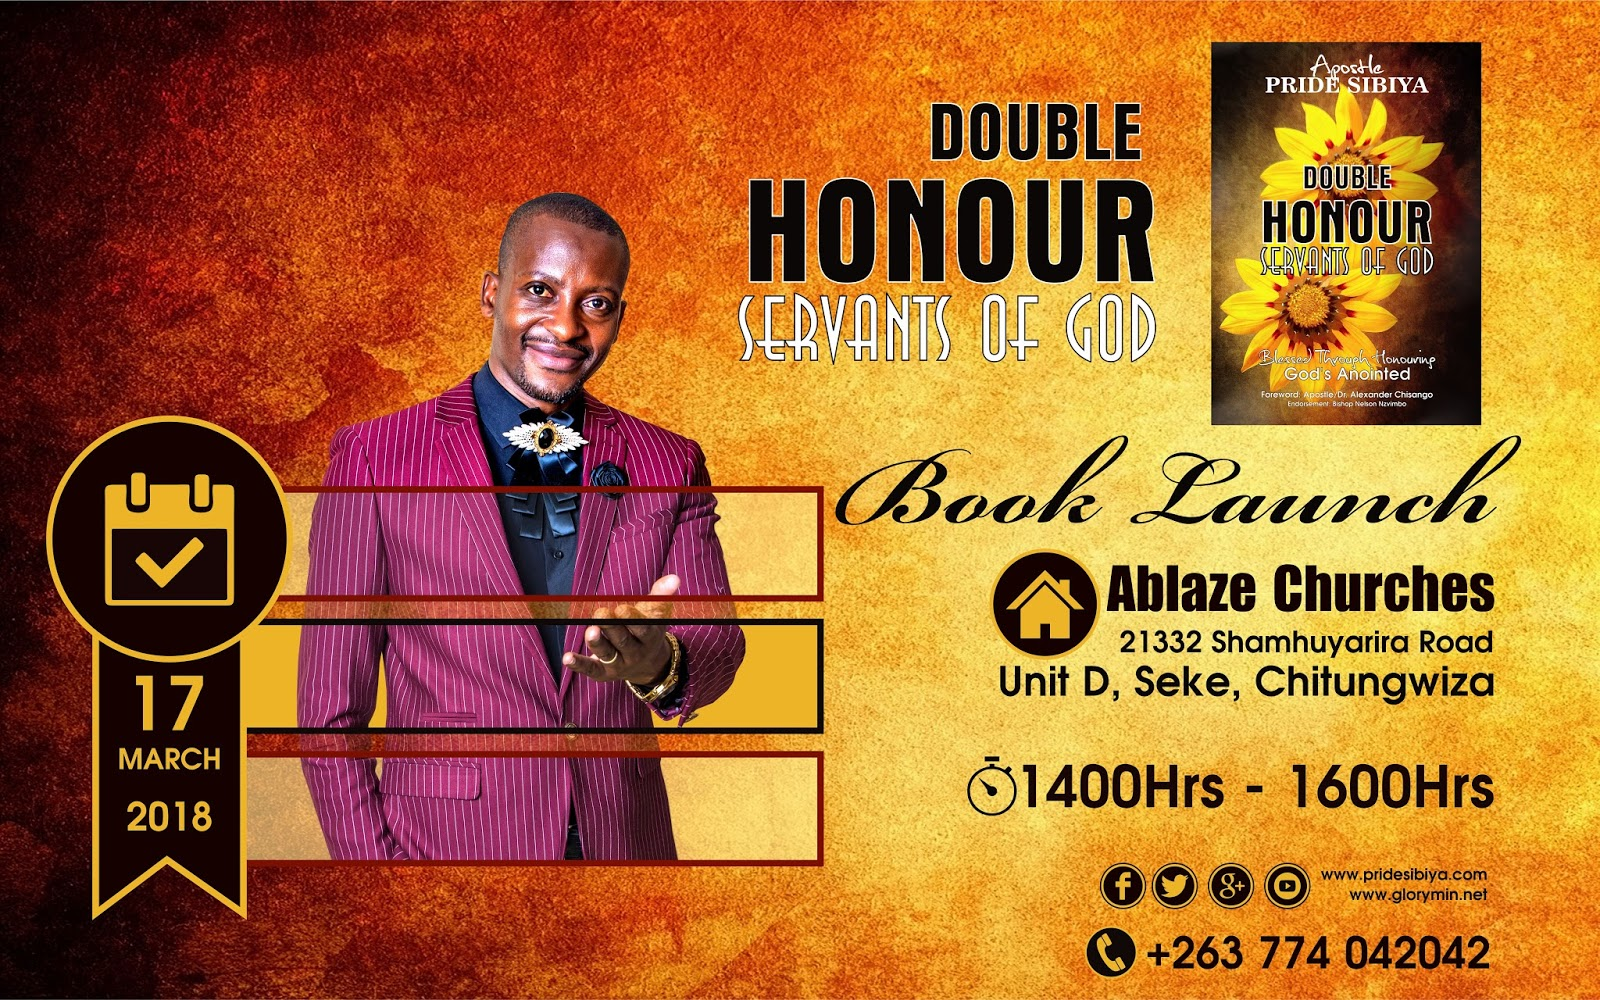 Double Honour Servants of God By Apostle P. Sibiya - Book Endorsement By Bishop Nelson Nzvimbo